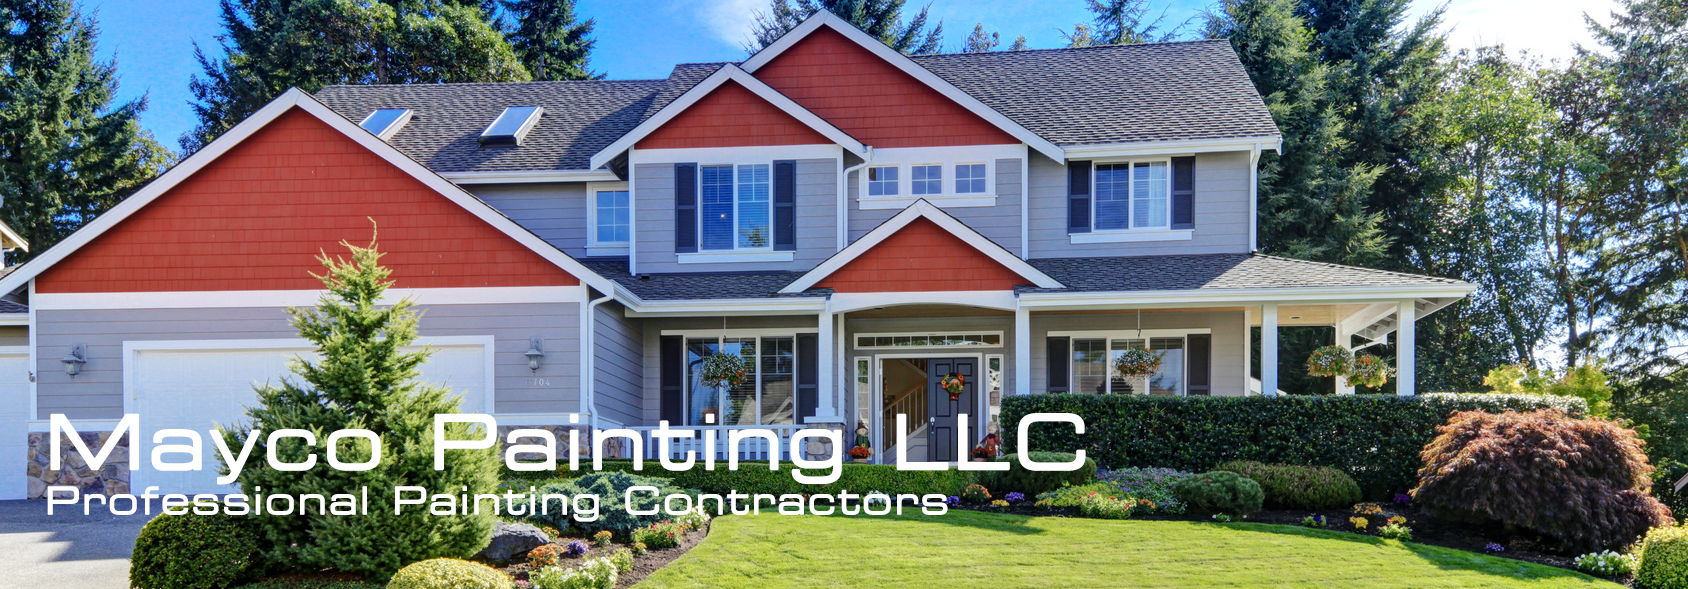 beaverton-painting-contractors